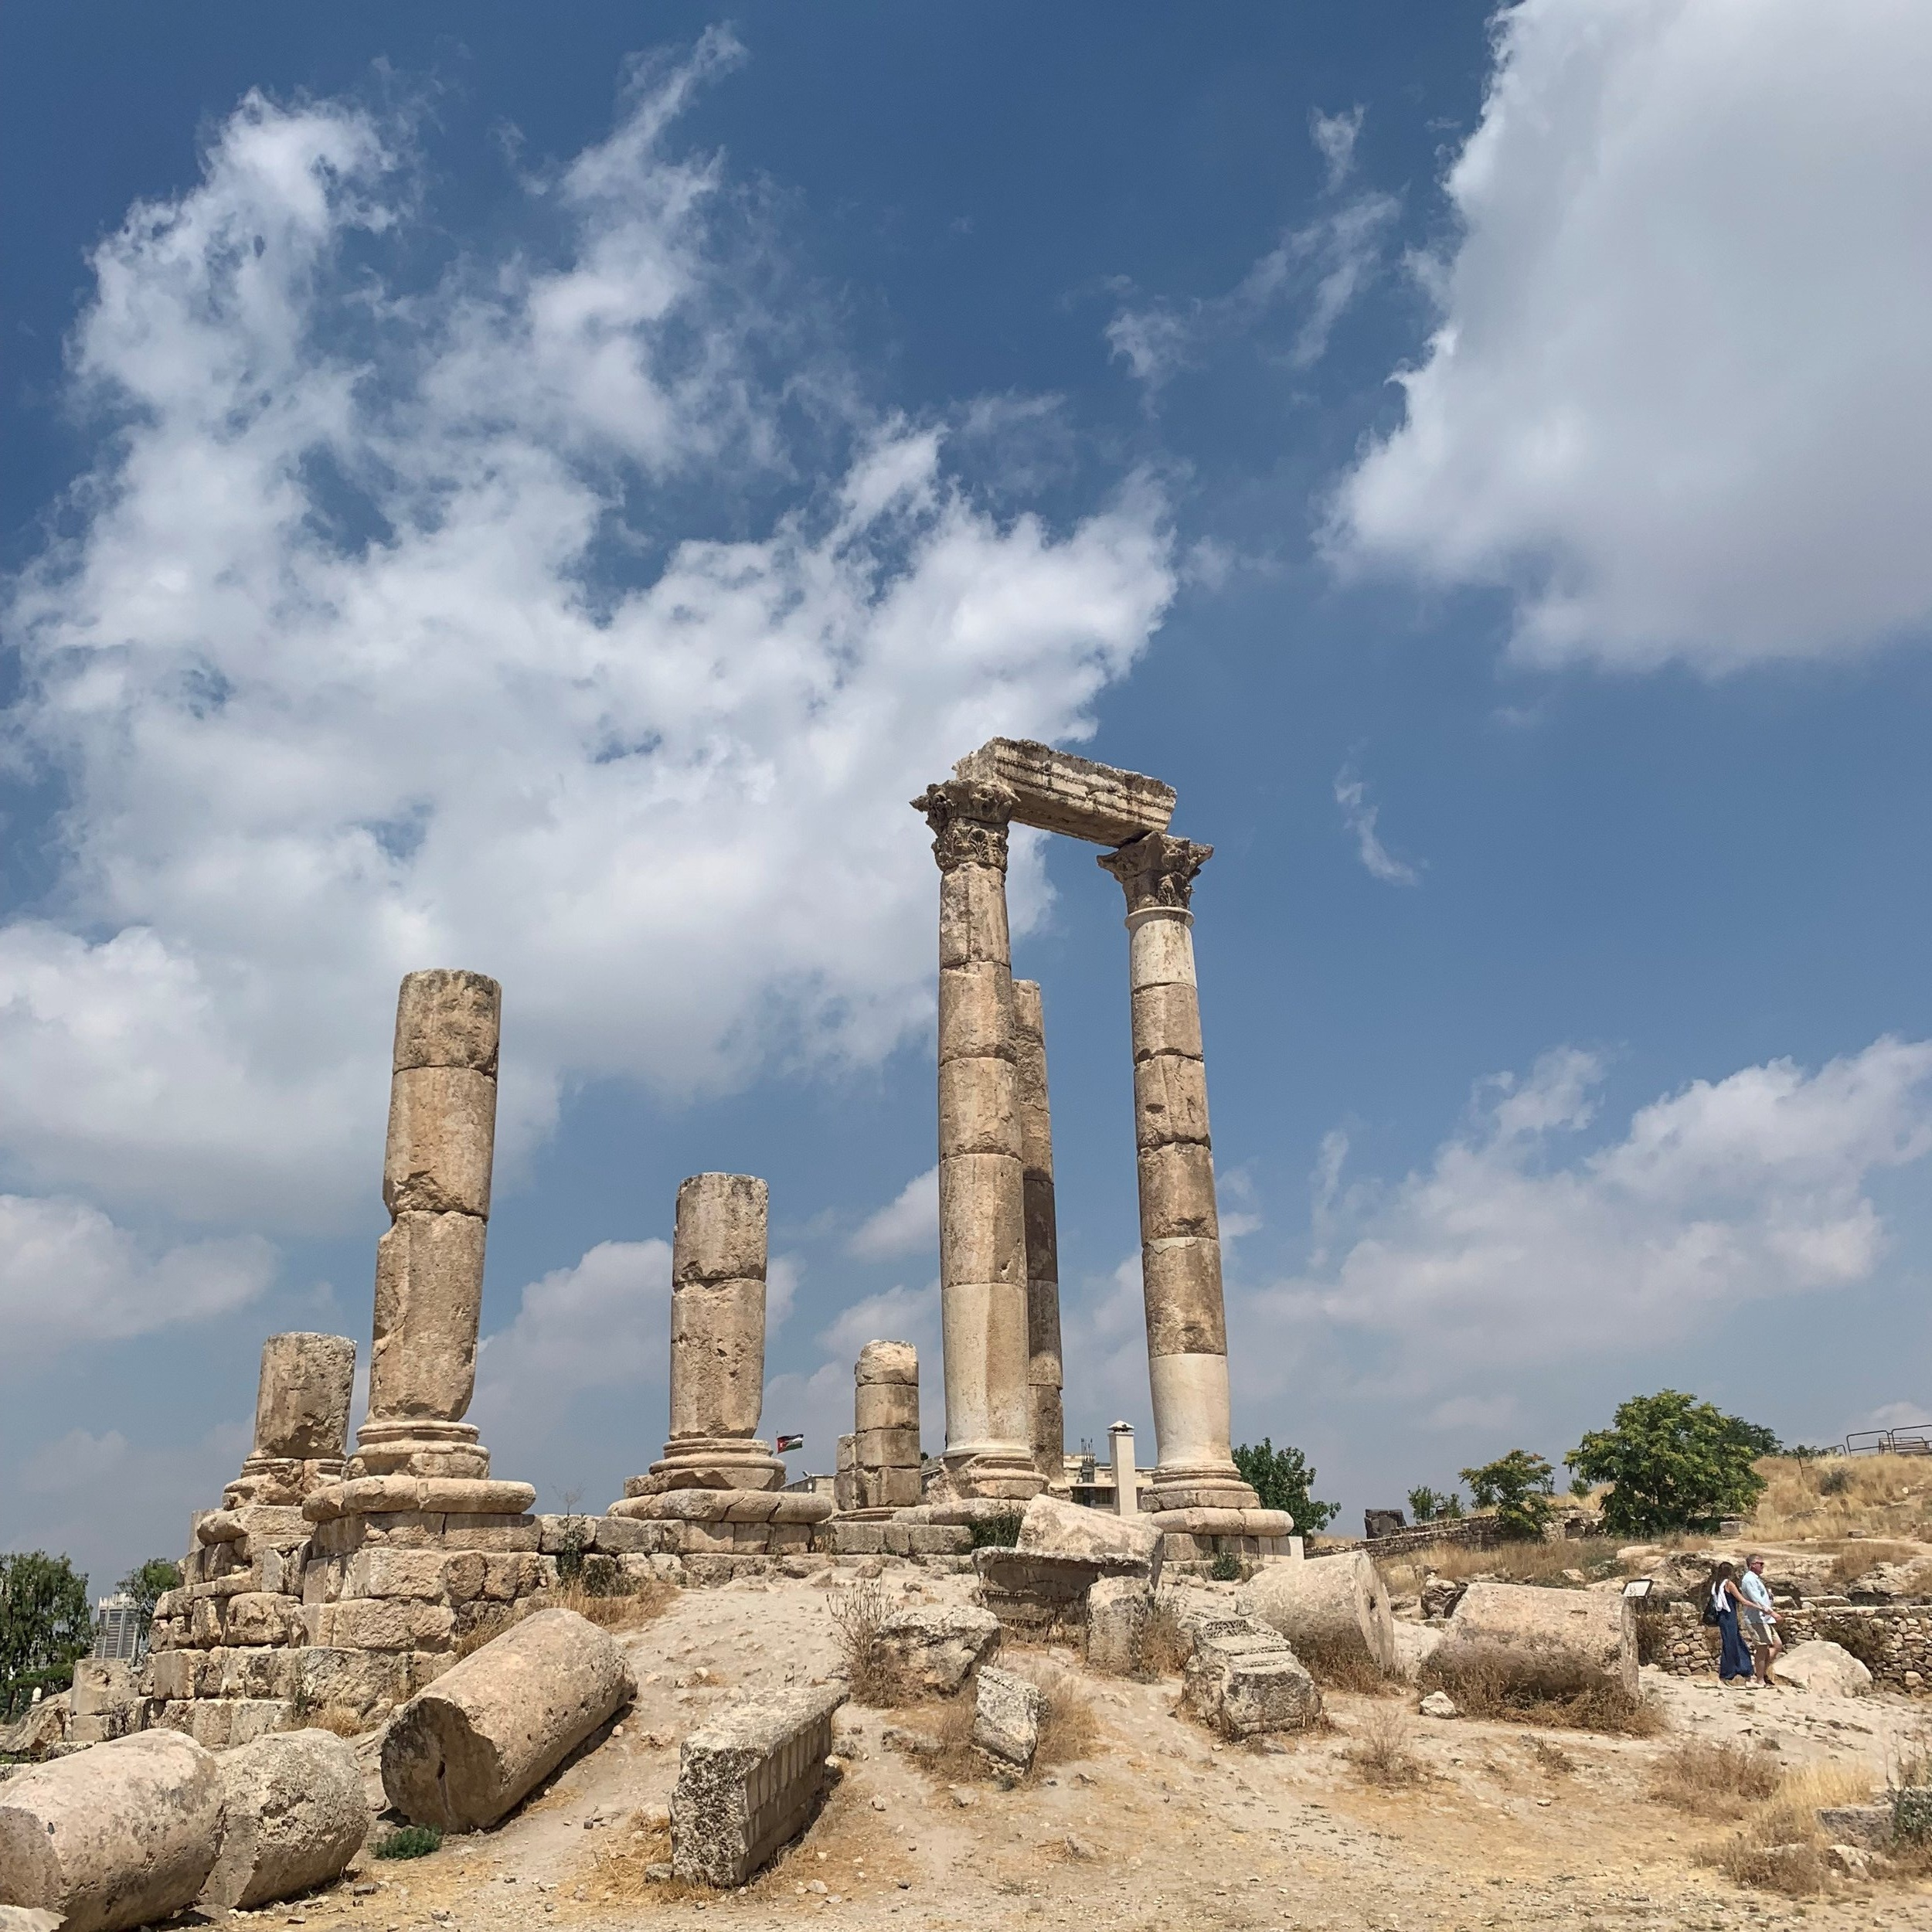 On our city tour of Amman, we saw the Temple of Hercules and the Roman Amphitheater. After this, my standards were super high for Amman and the city continued to surprise me for the rest of my adventure! Photo credit: Russo, 2019